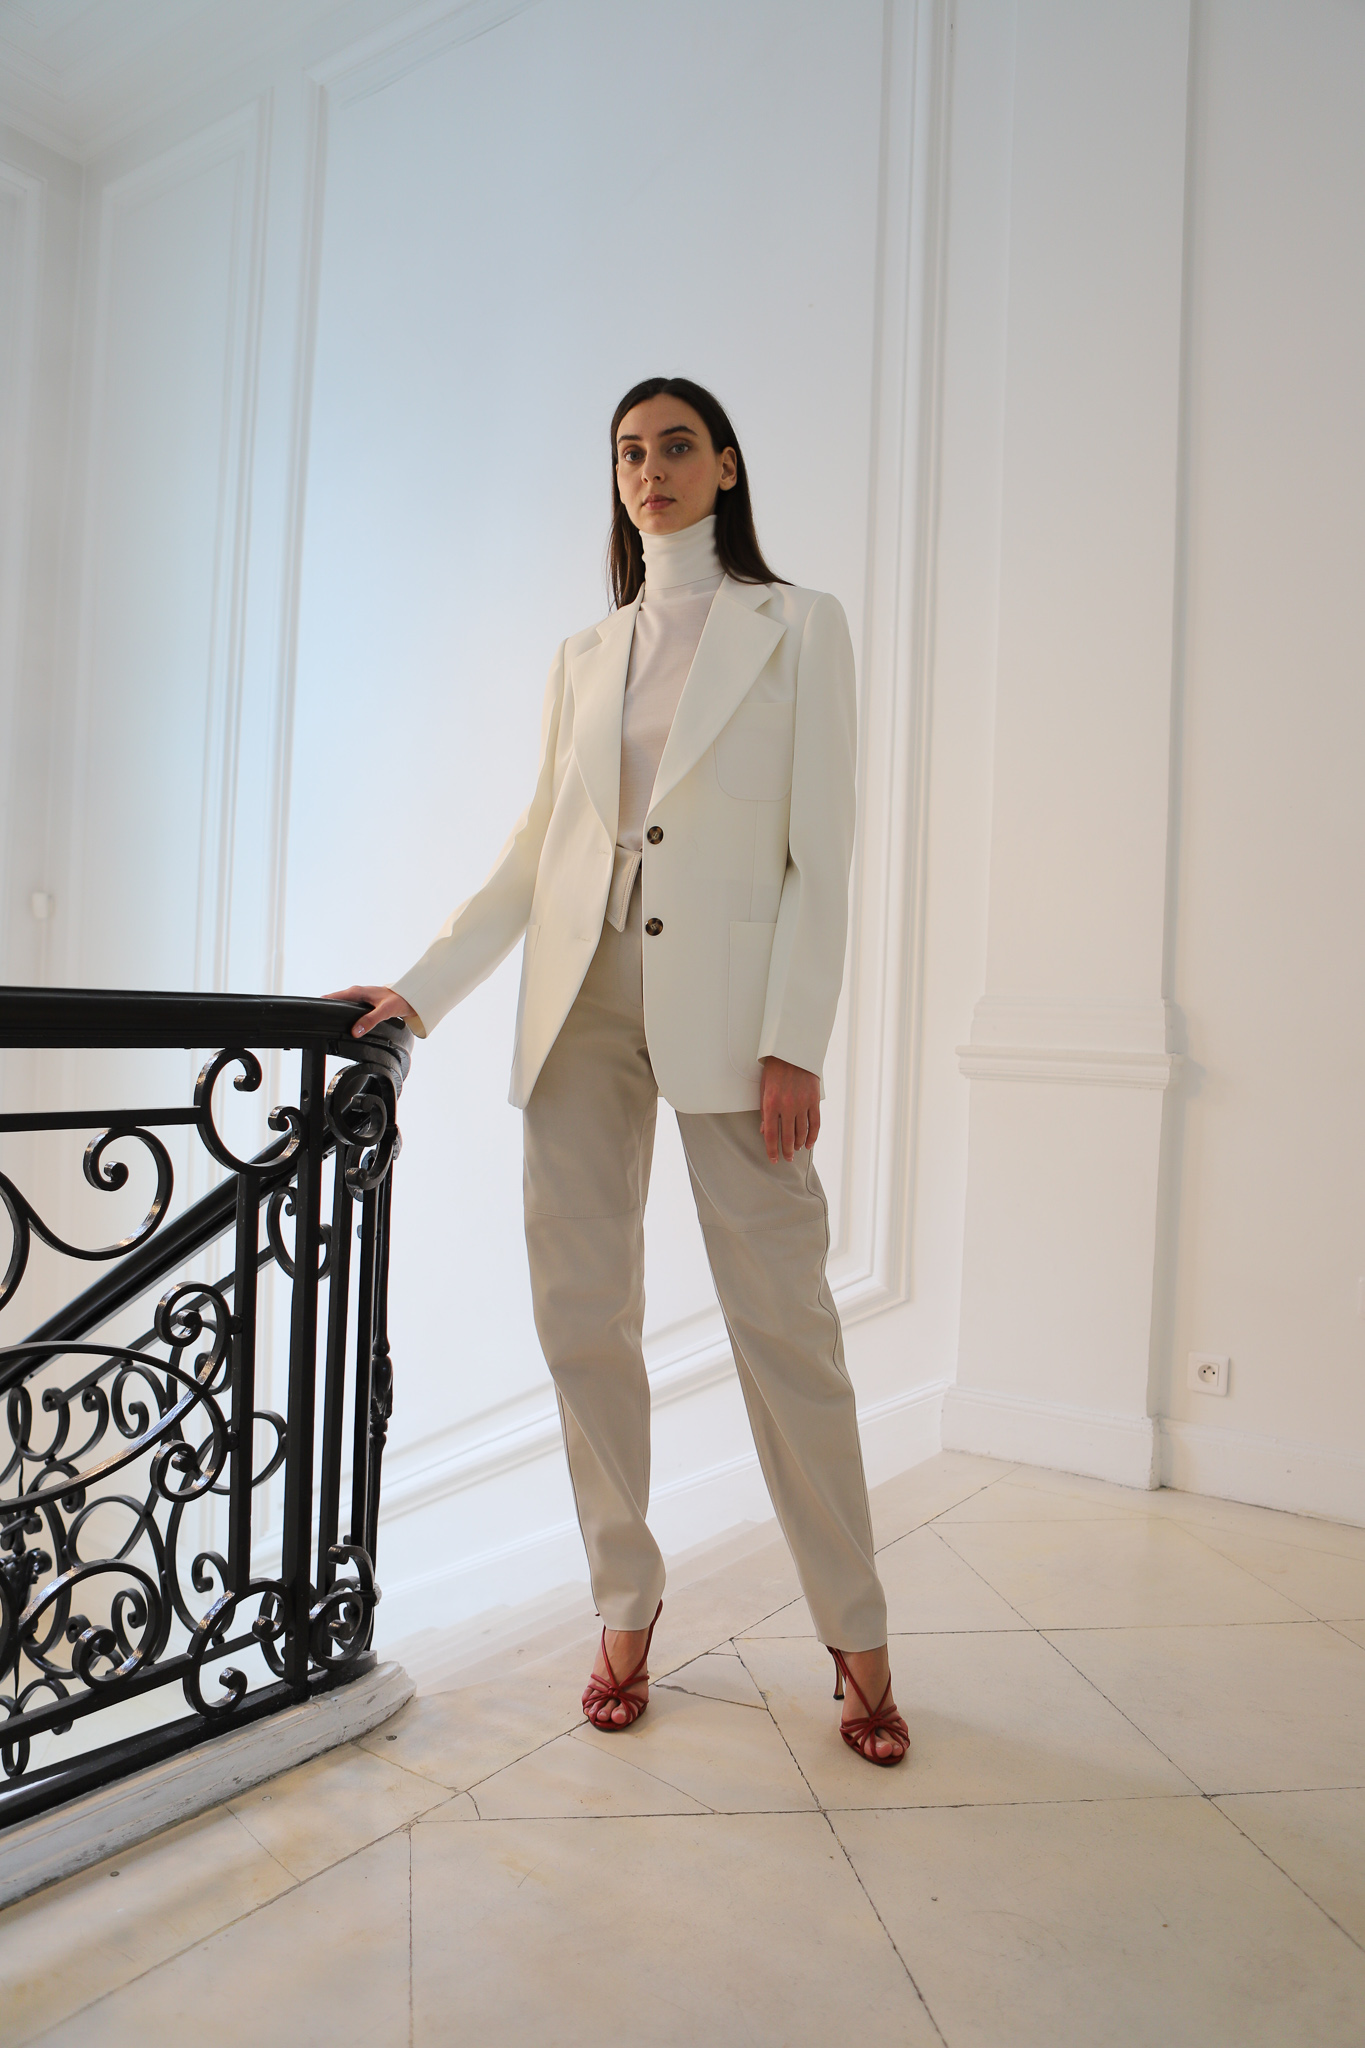 Victor Beckham Turtleneck Top in White Tailored Blazer in White Slim Fit Trousers in Beige Spring 20 RTW